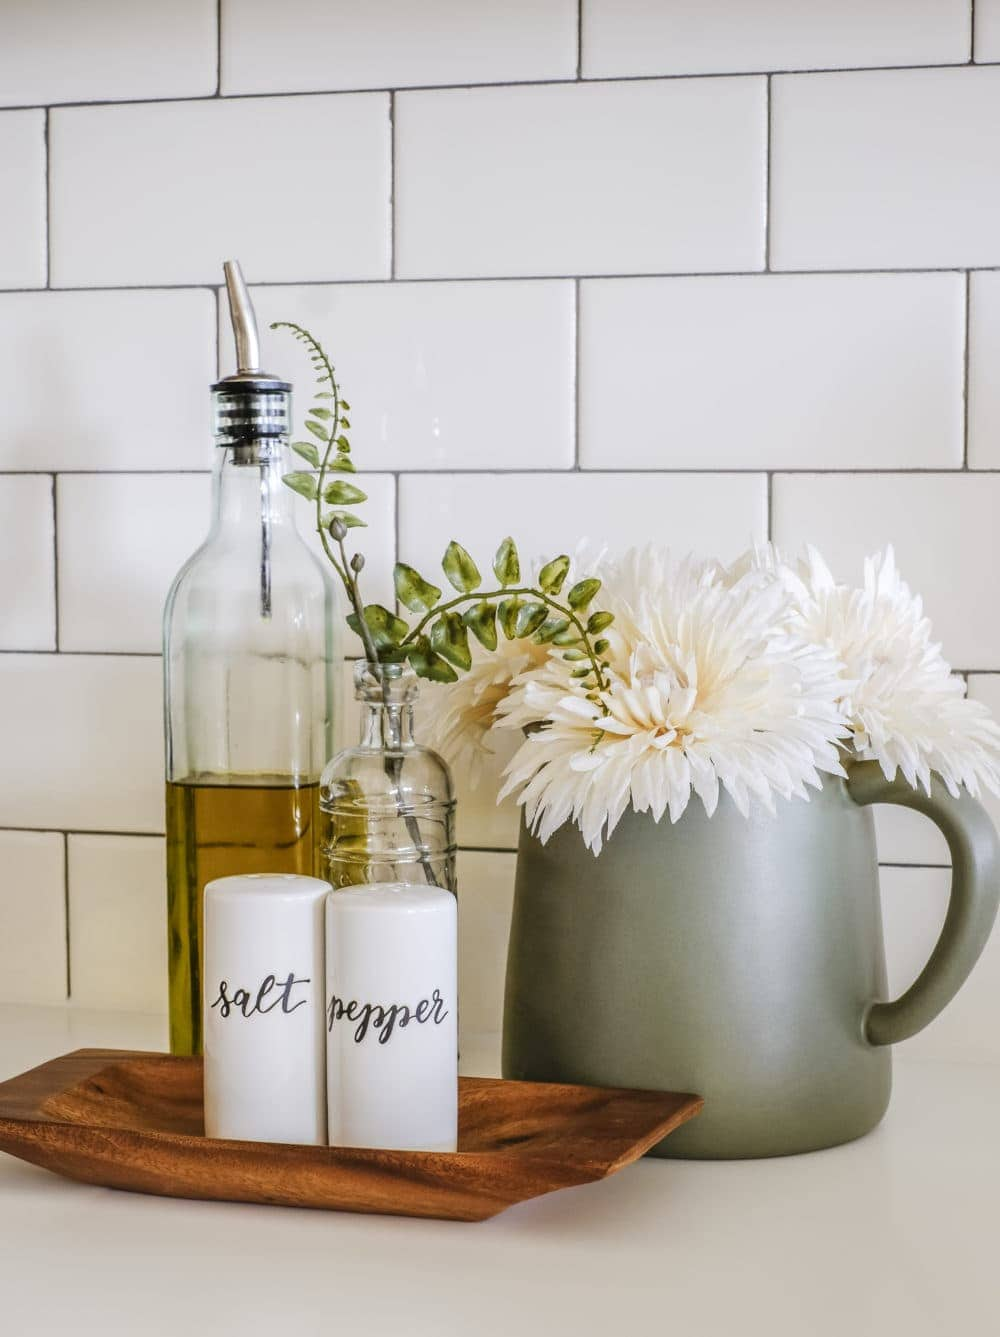 salt and pepper shakers with olive oil dispenser and flowers